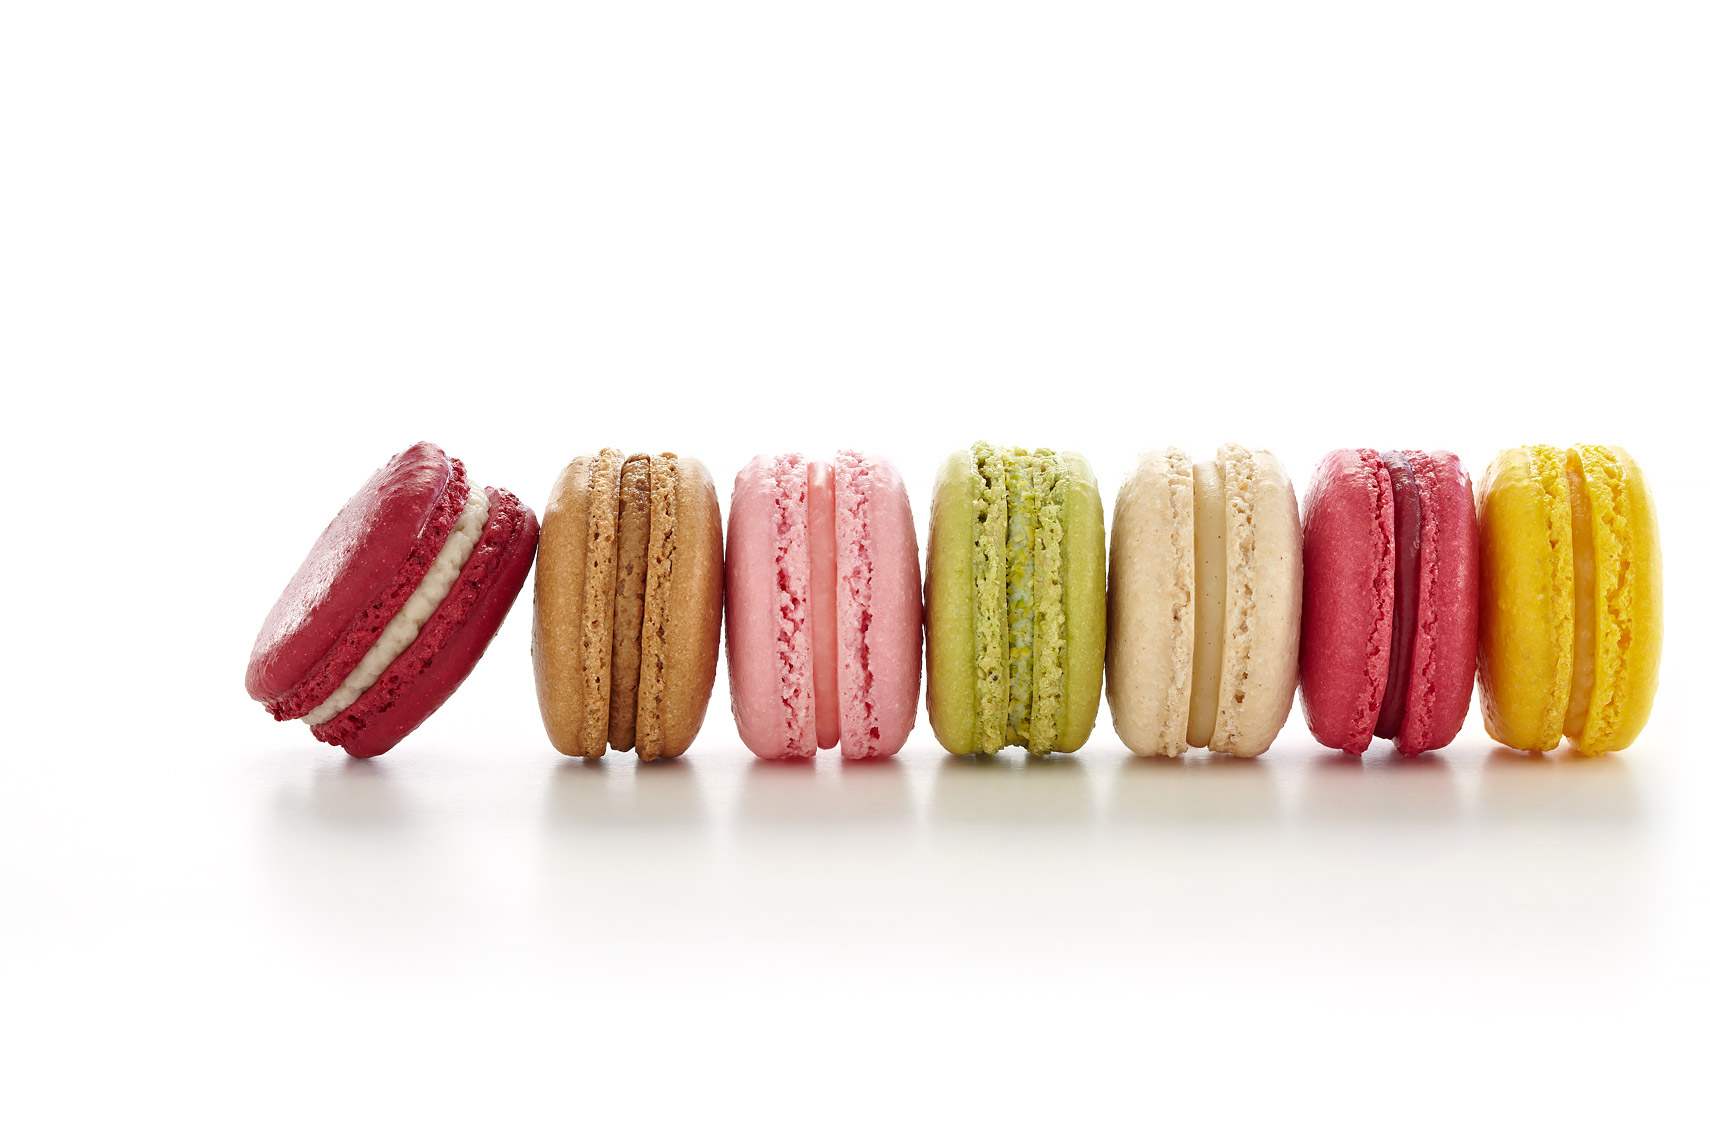 House of Macarons